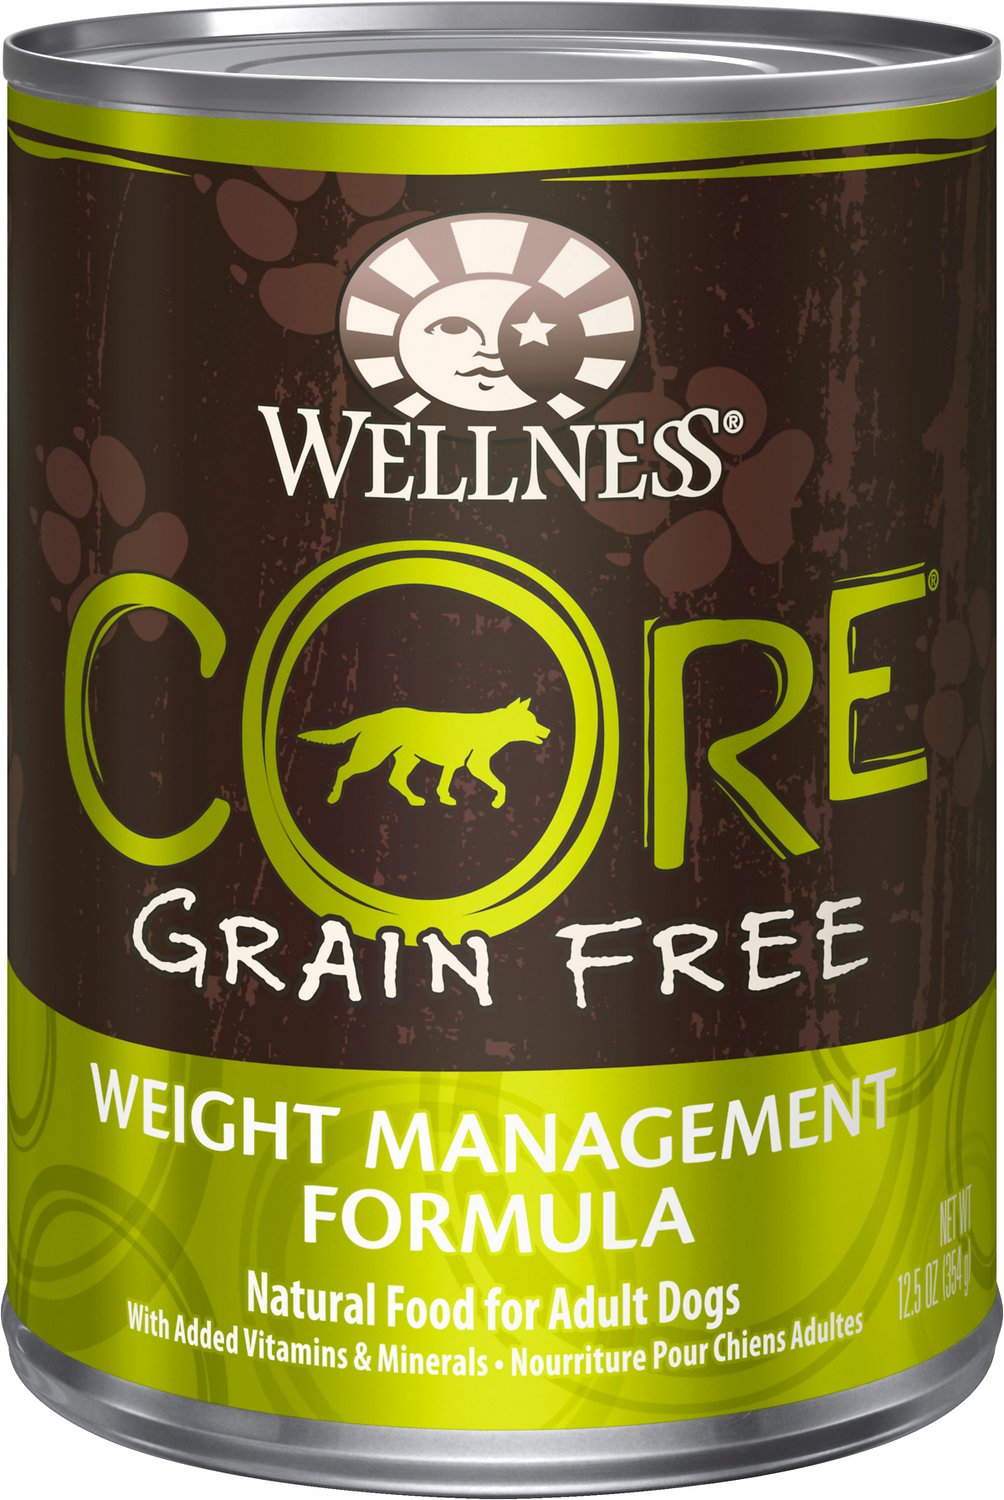 Wellness CORE Grain-Free Weight Management Formula Canned Dog Food, 12.5-oz